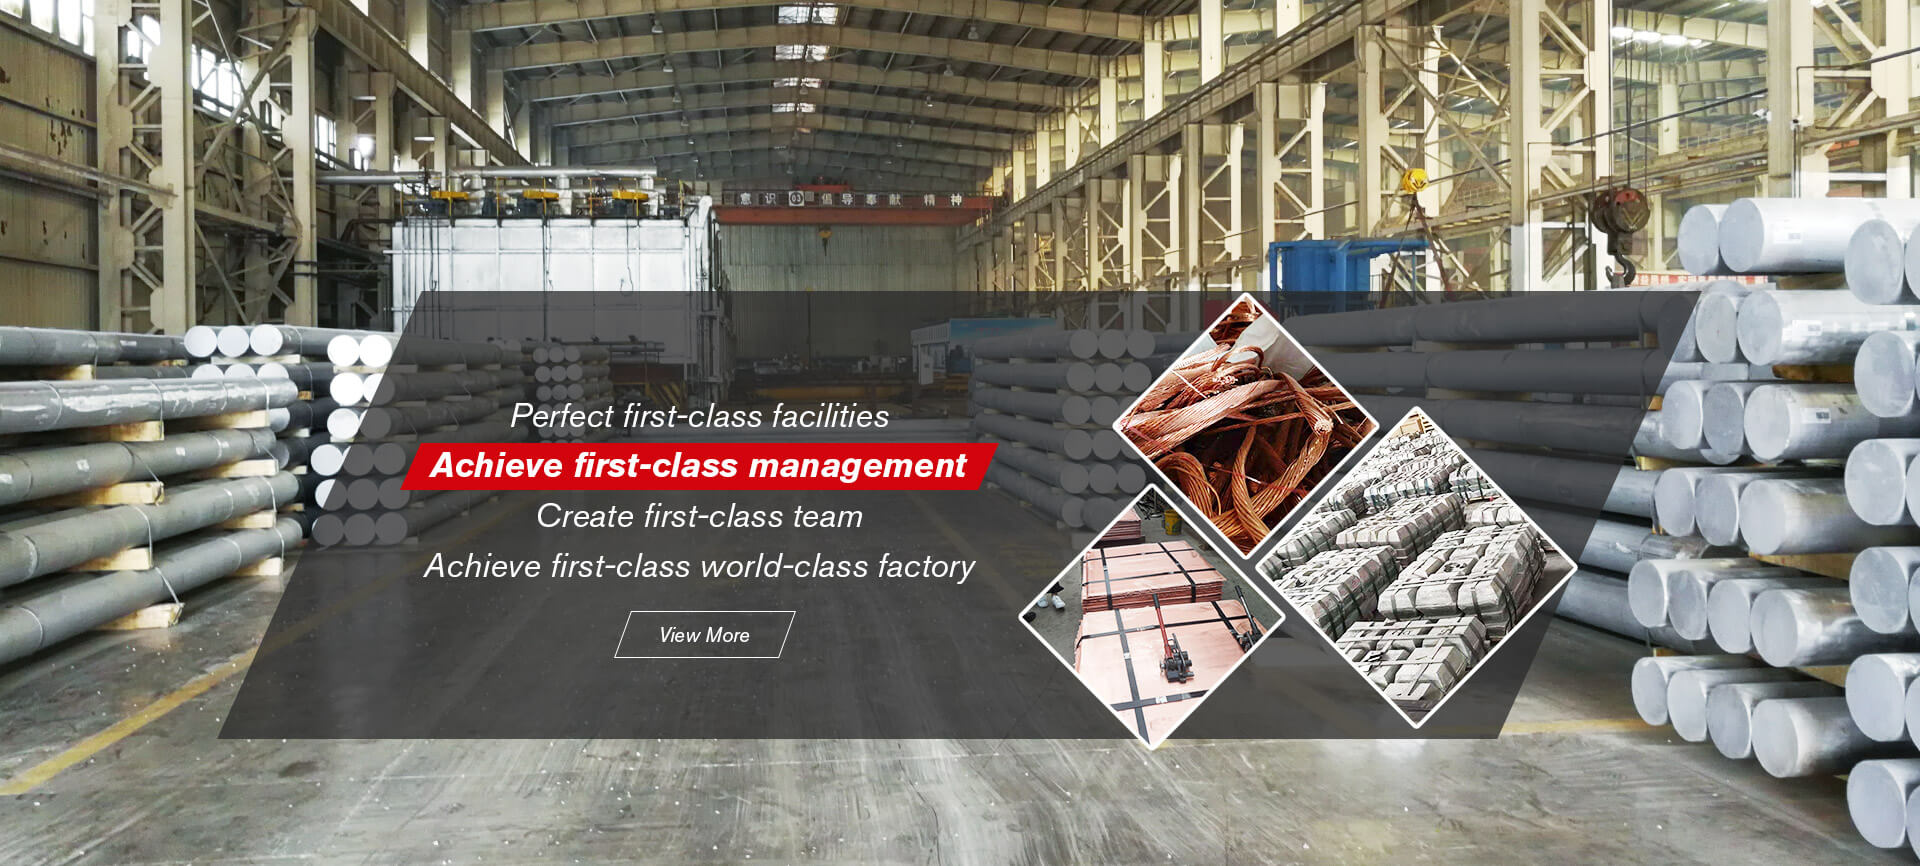 Perfect first-class facilities. achieve first-class management. create first-class team